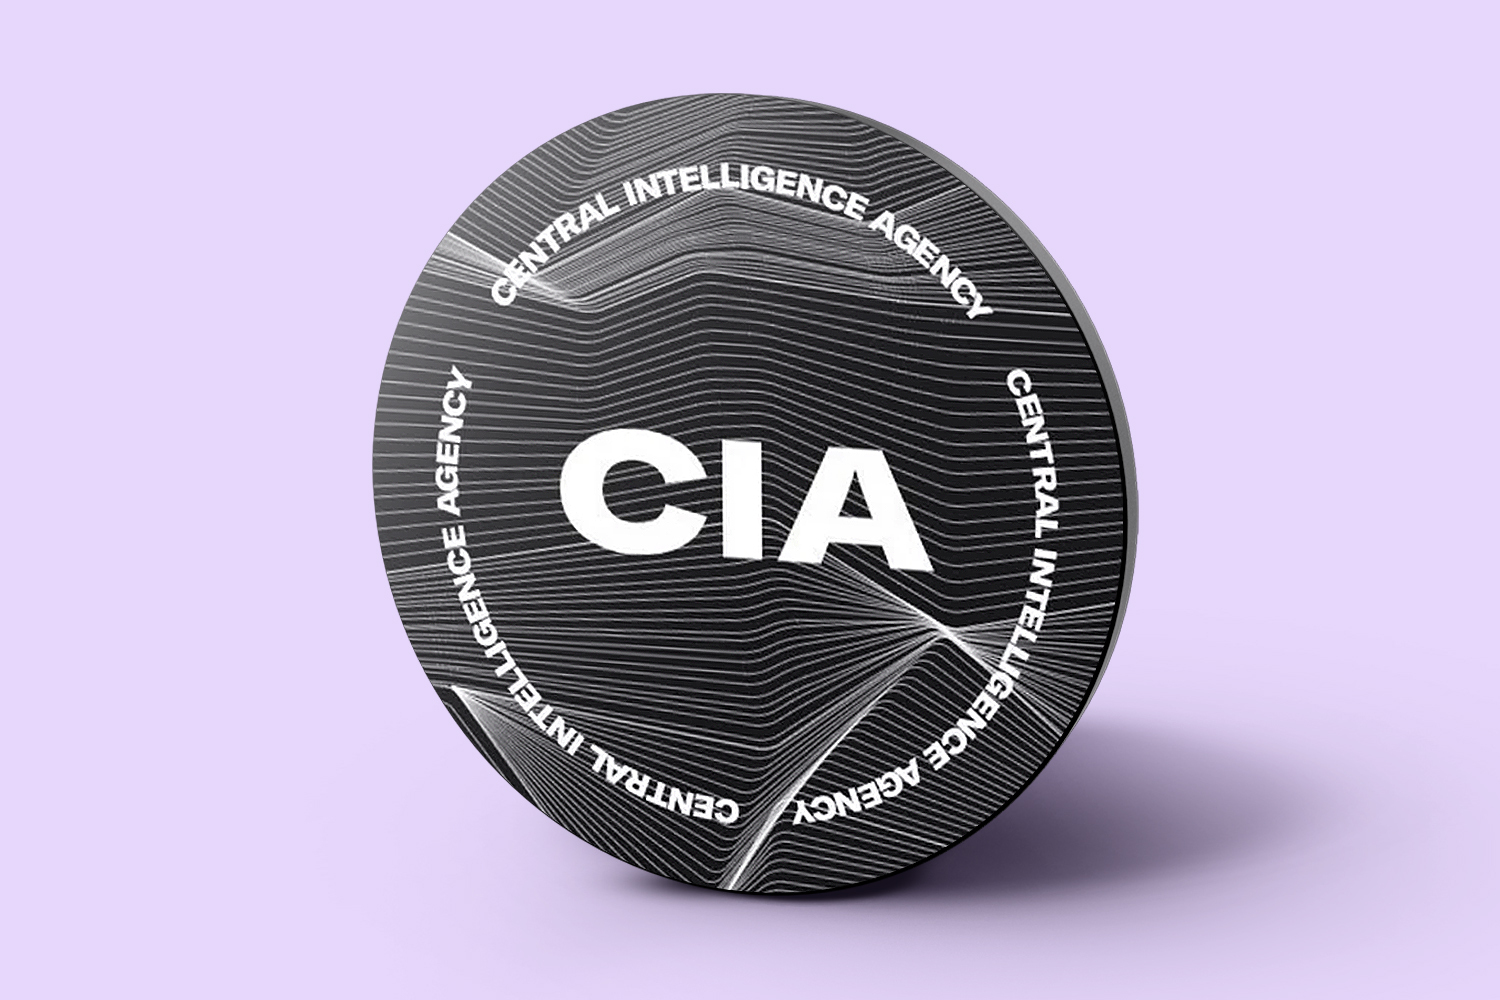 CIA's New Logo is a Small Slice of its Total Brand Pie